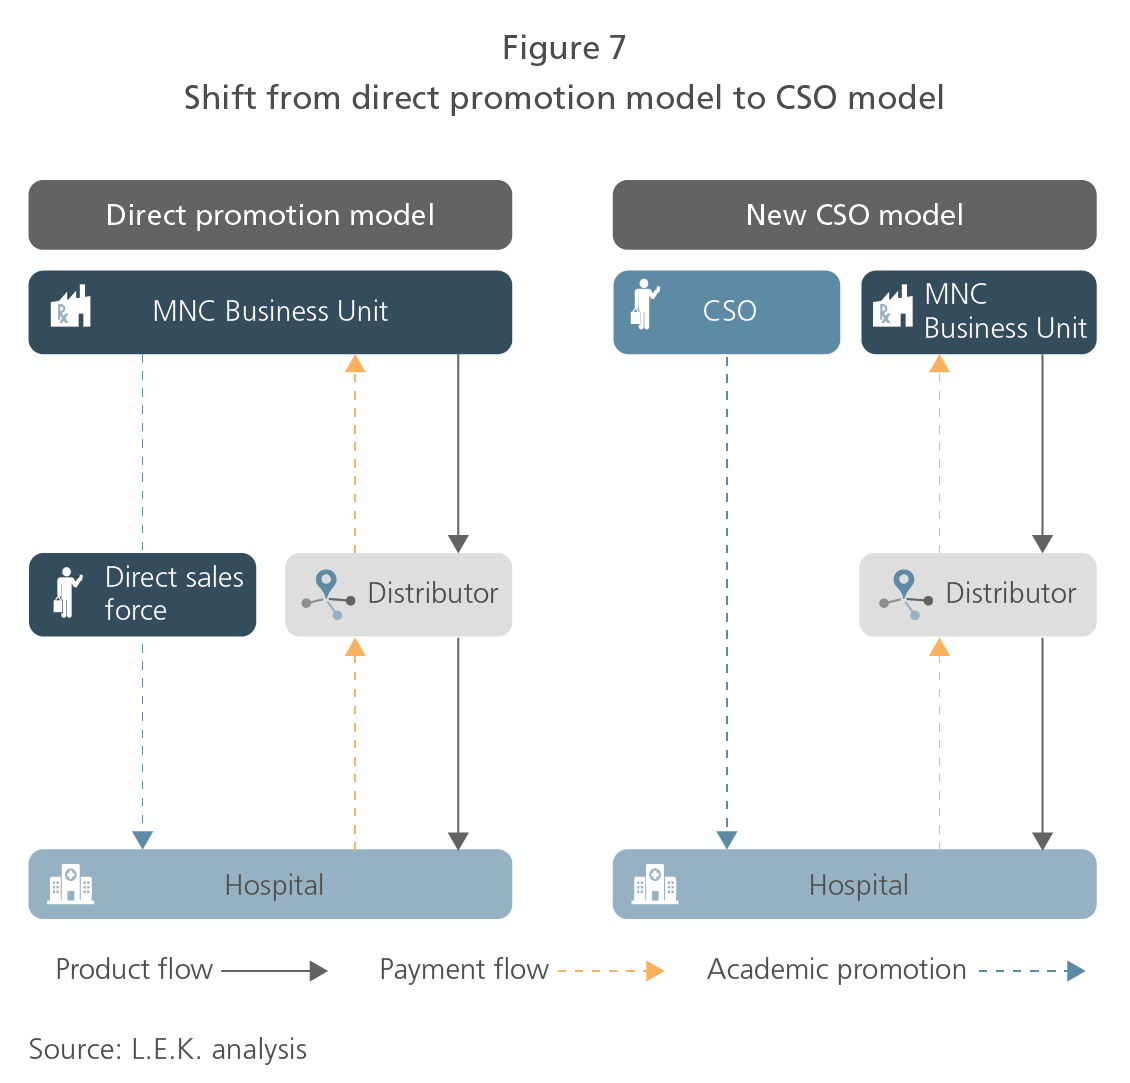 Shift from direct promotion model to CSO model